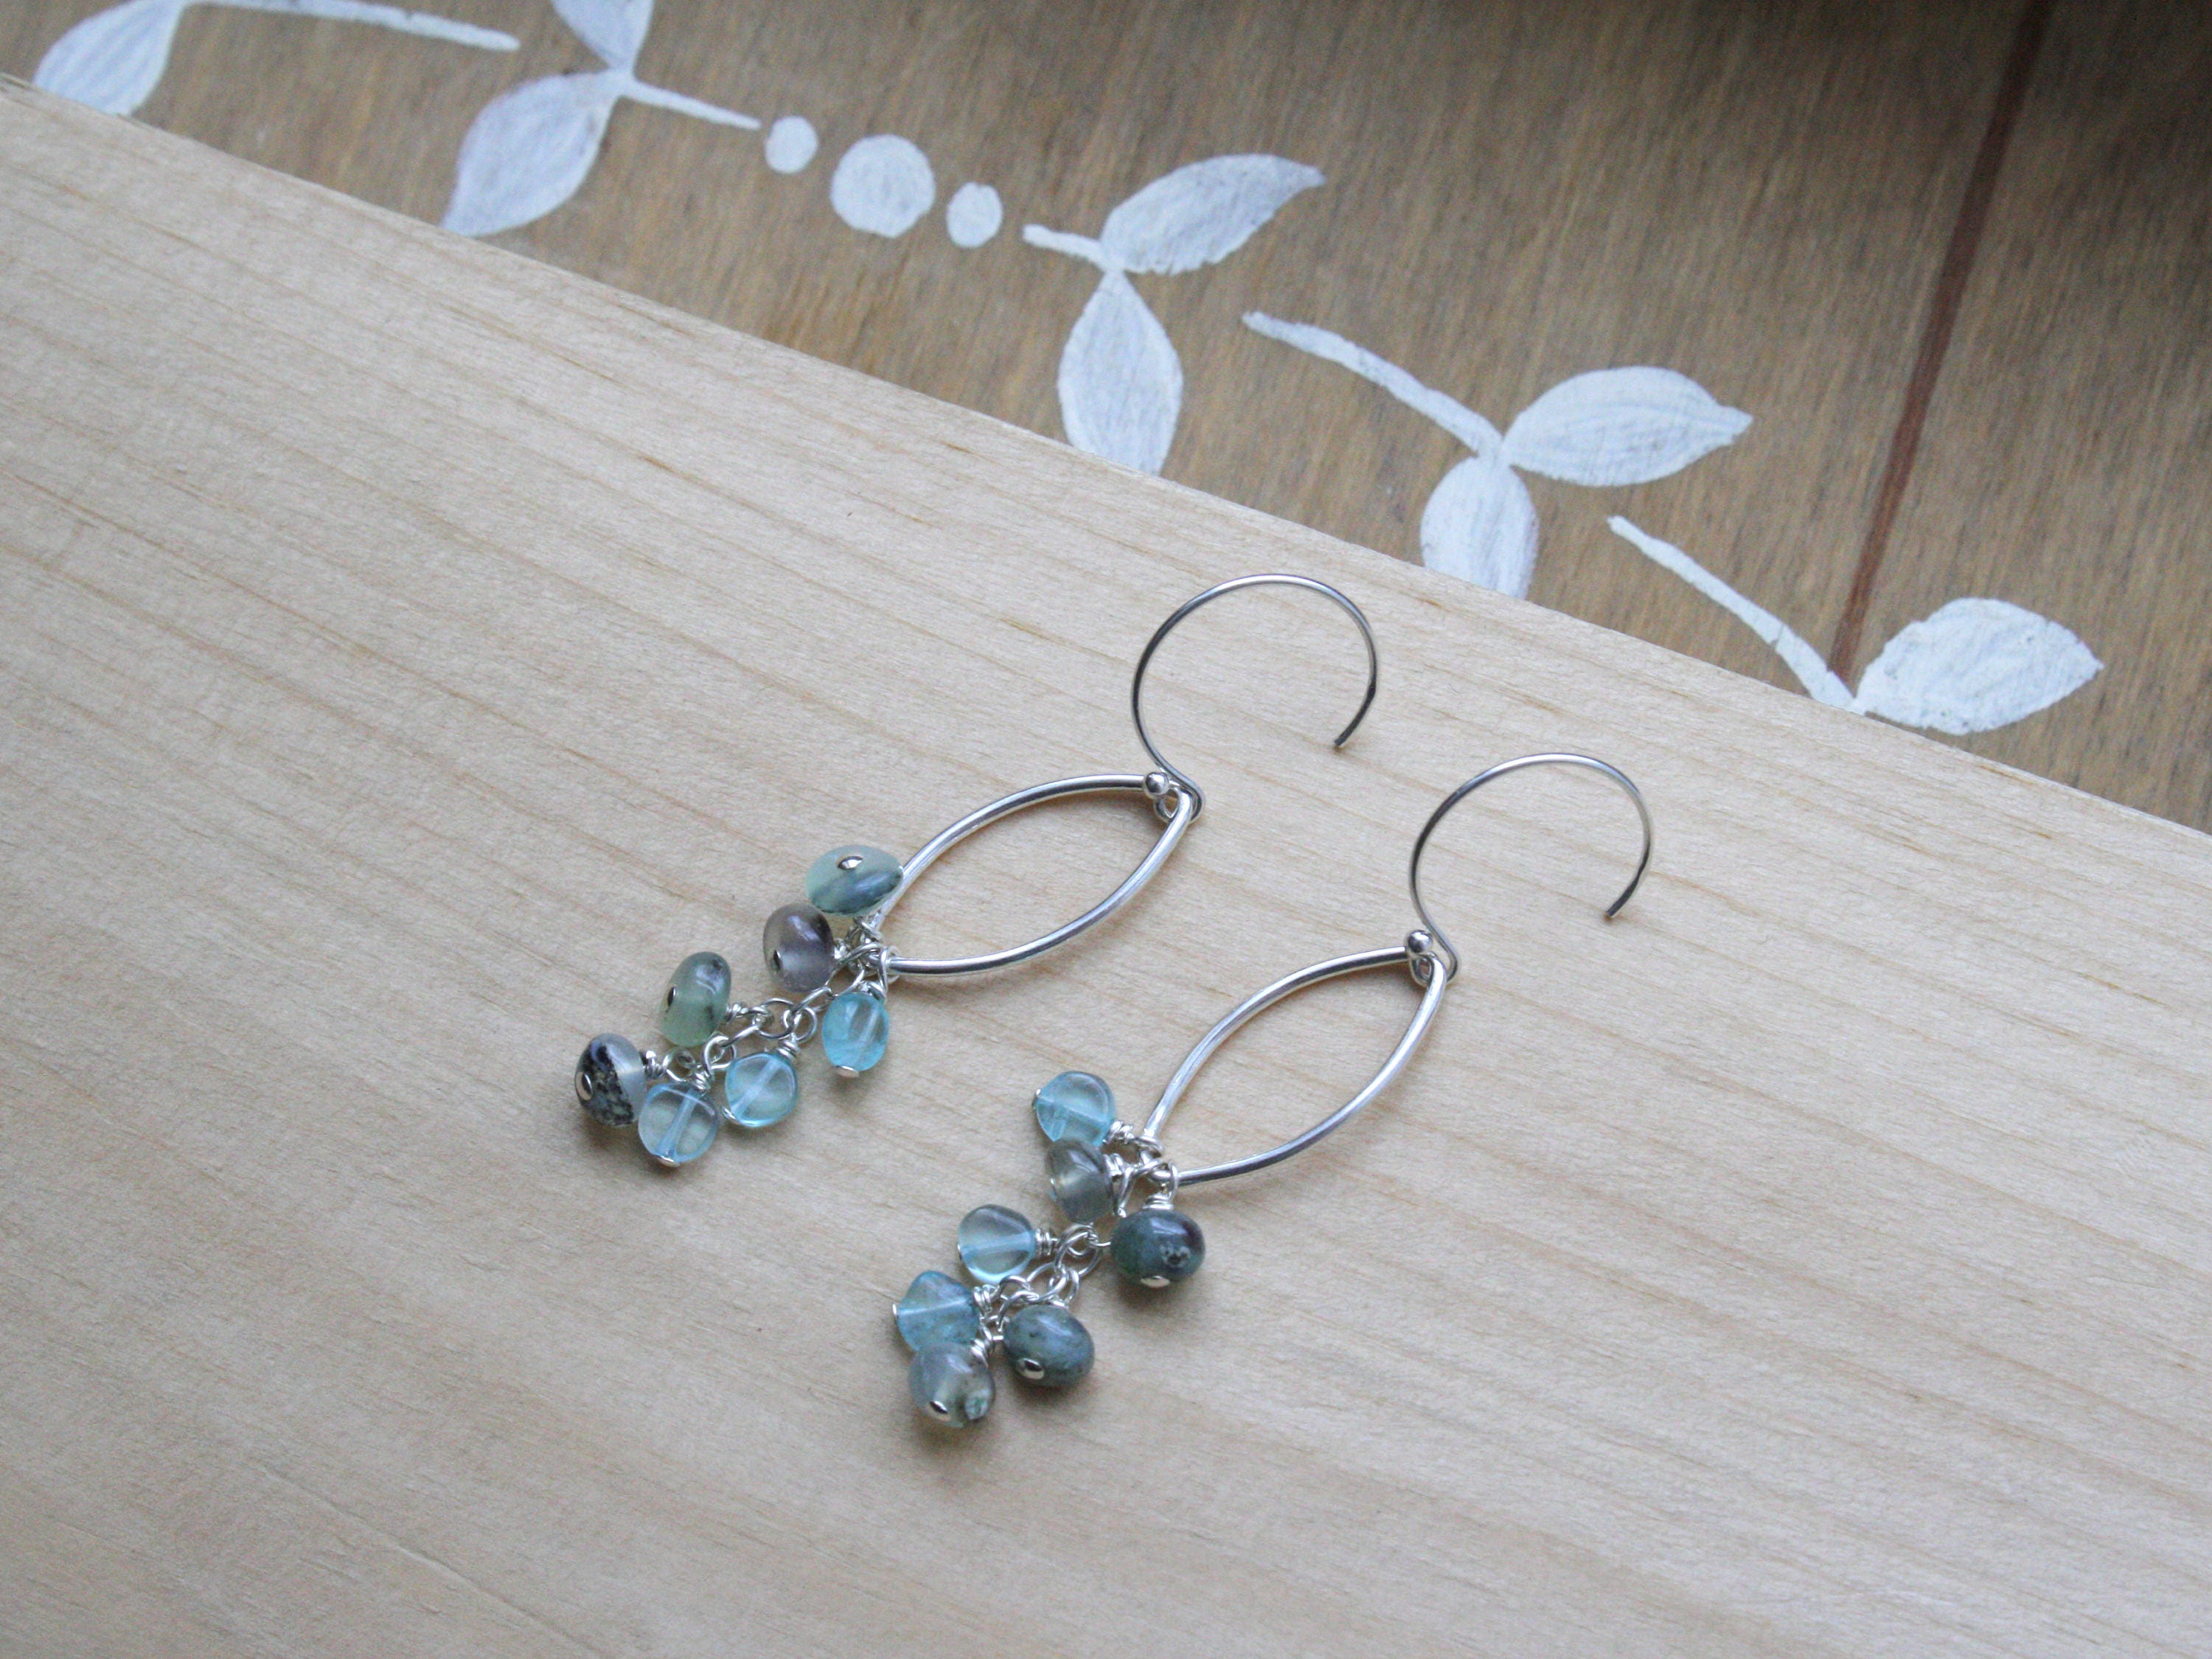 earrings s neon silver lanka p apatite picture madagascan rare ashanti hemimorphite sri of